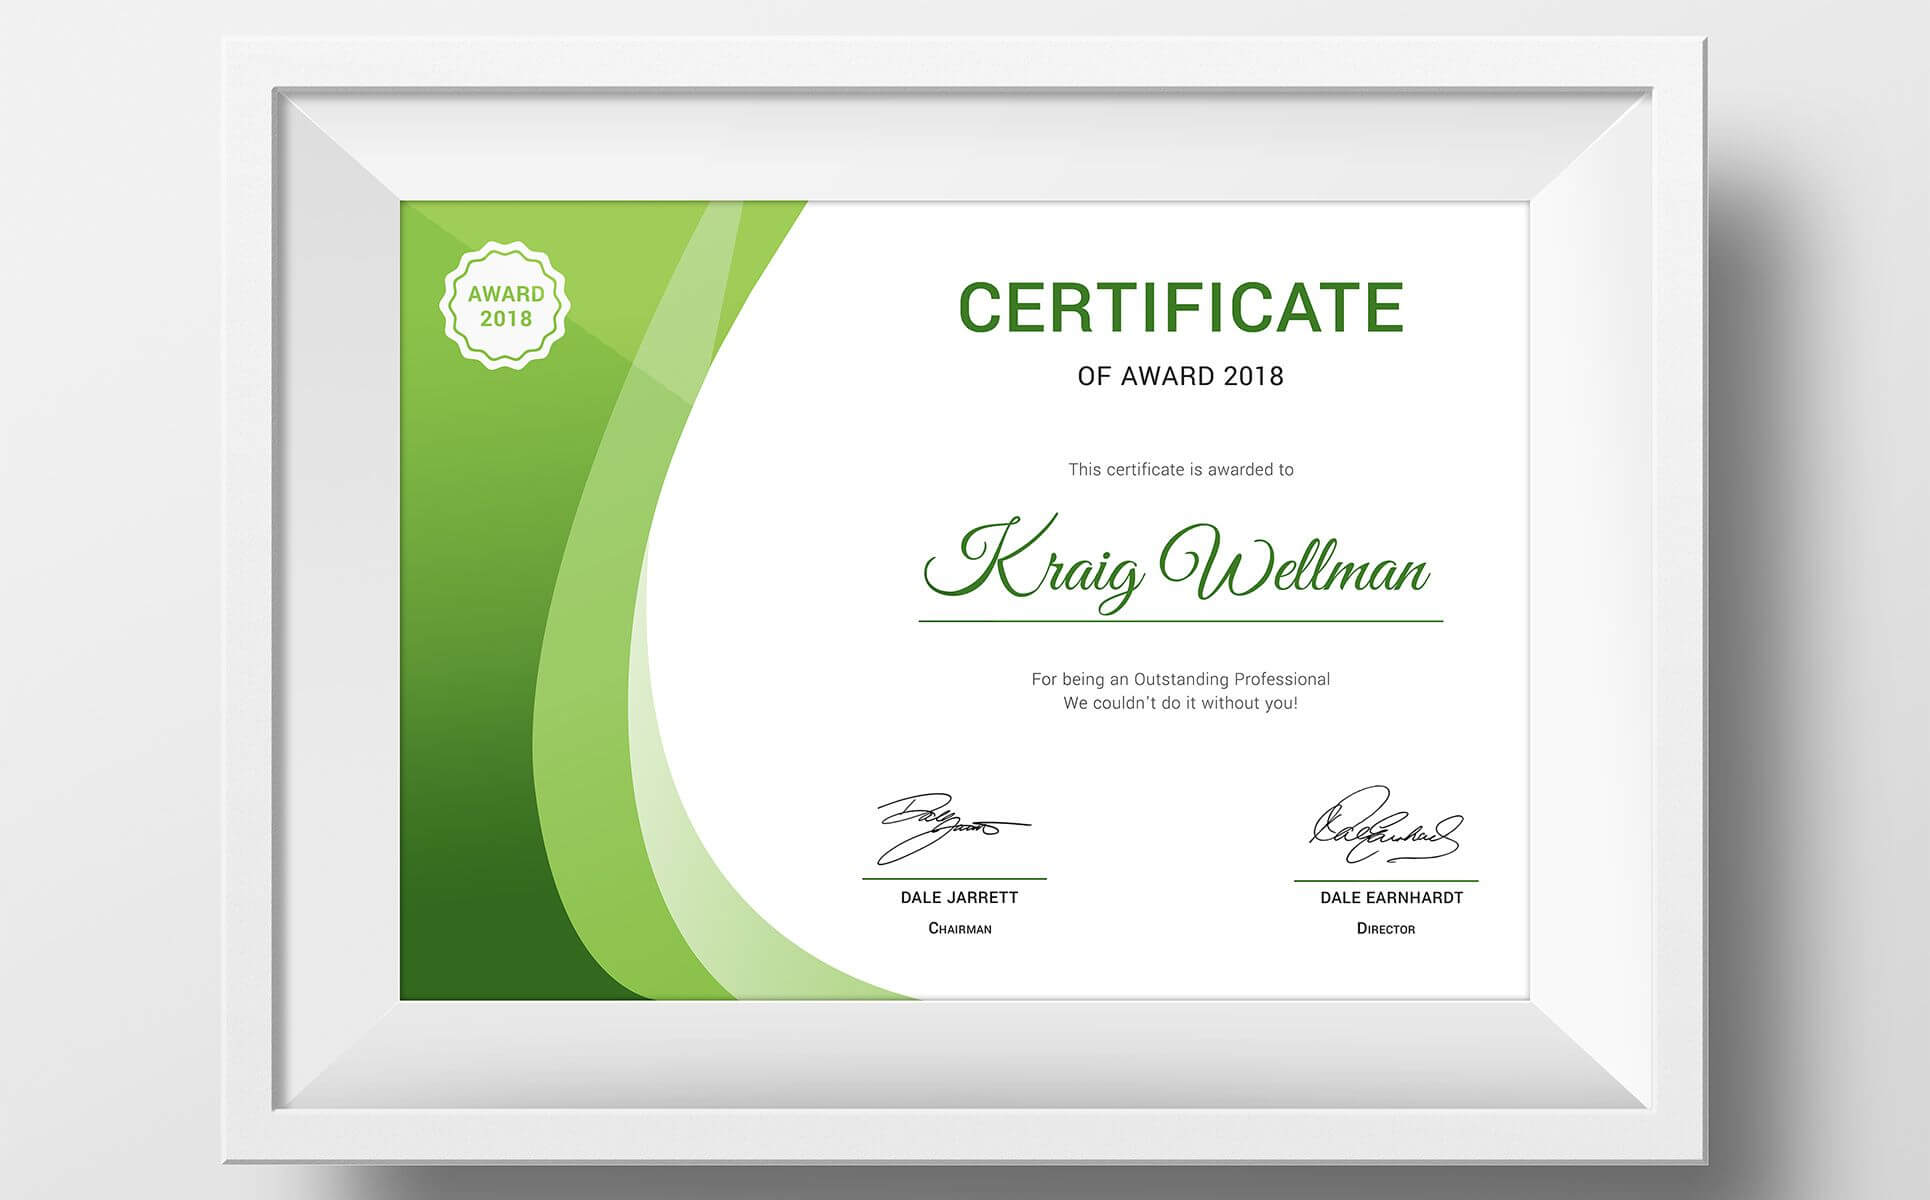 Award Certificate Template #73891 | Design Illustration Art in Small Certificate Template